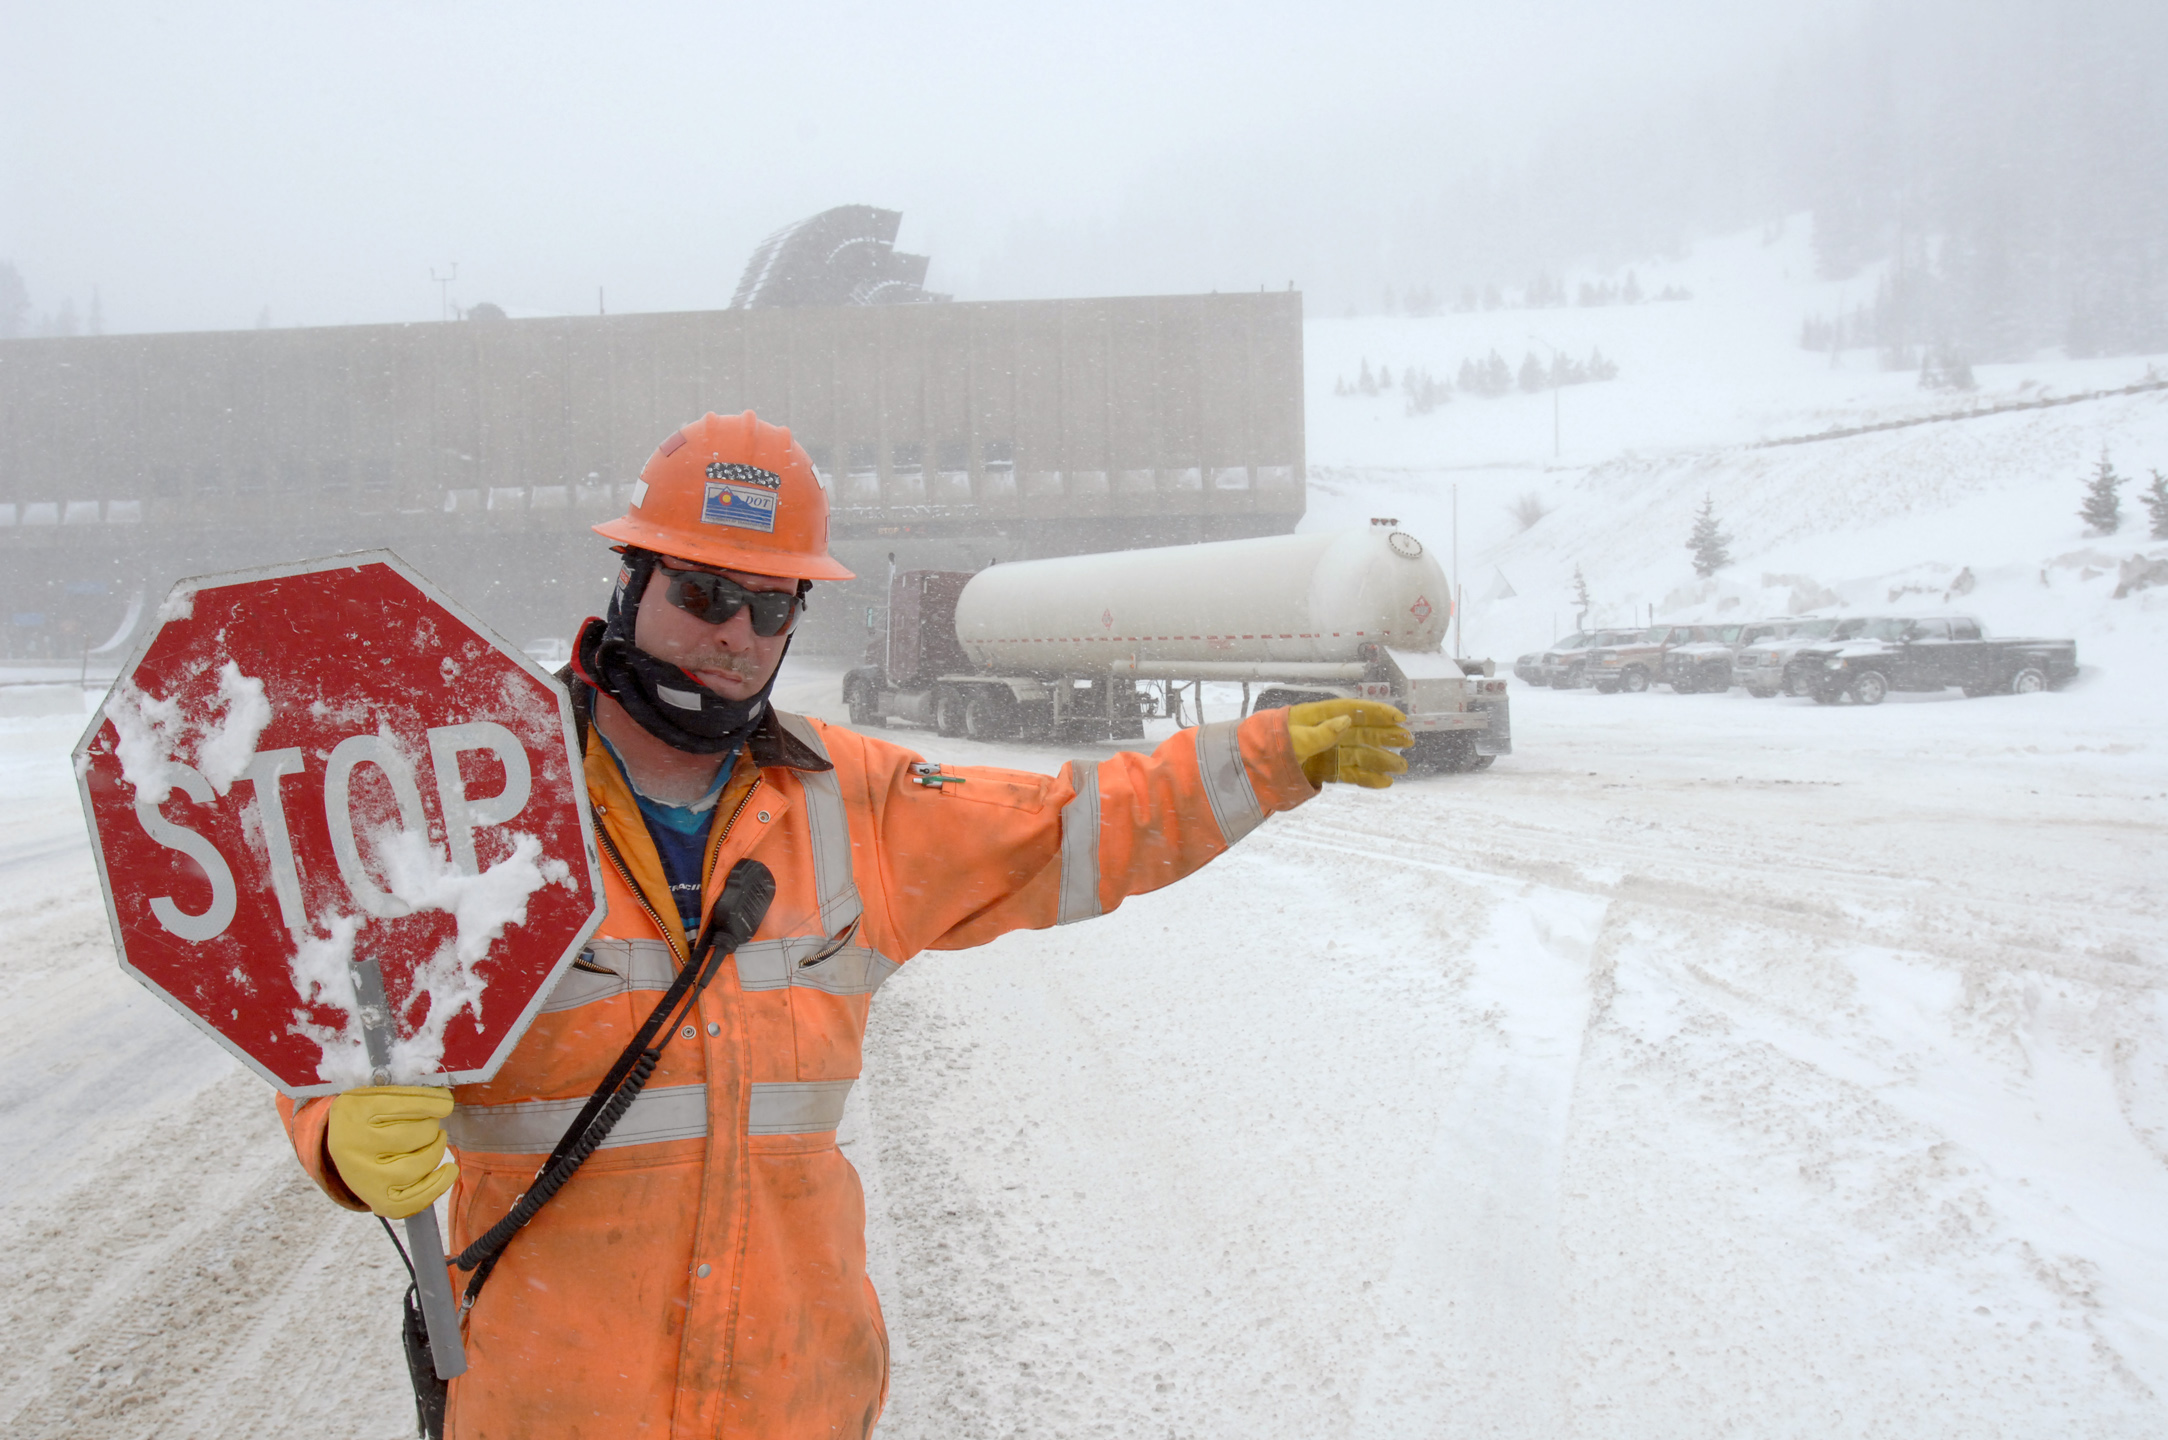 <p>Colorado Department Transportation worker George Fischer halts westbound Interstate 70 traffic at the east portal to the 11,300 foot Eisenhower Tunnel in a 2008 snowstorm to allow vehicles carrying hazardous materials through. High winds and blowing snows created dangerous conditions which closed Loveland Pass where hazmat vehicles usually travel.</p>